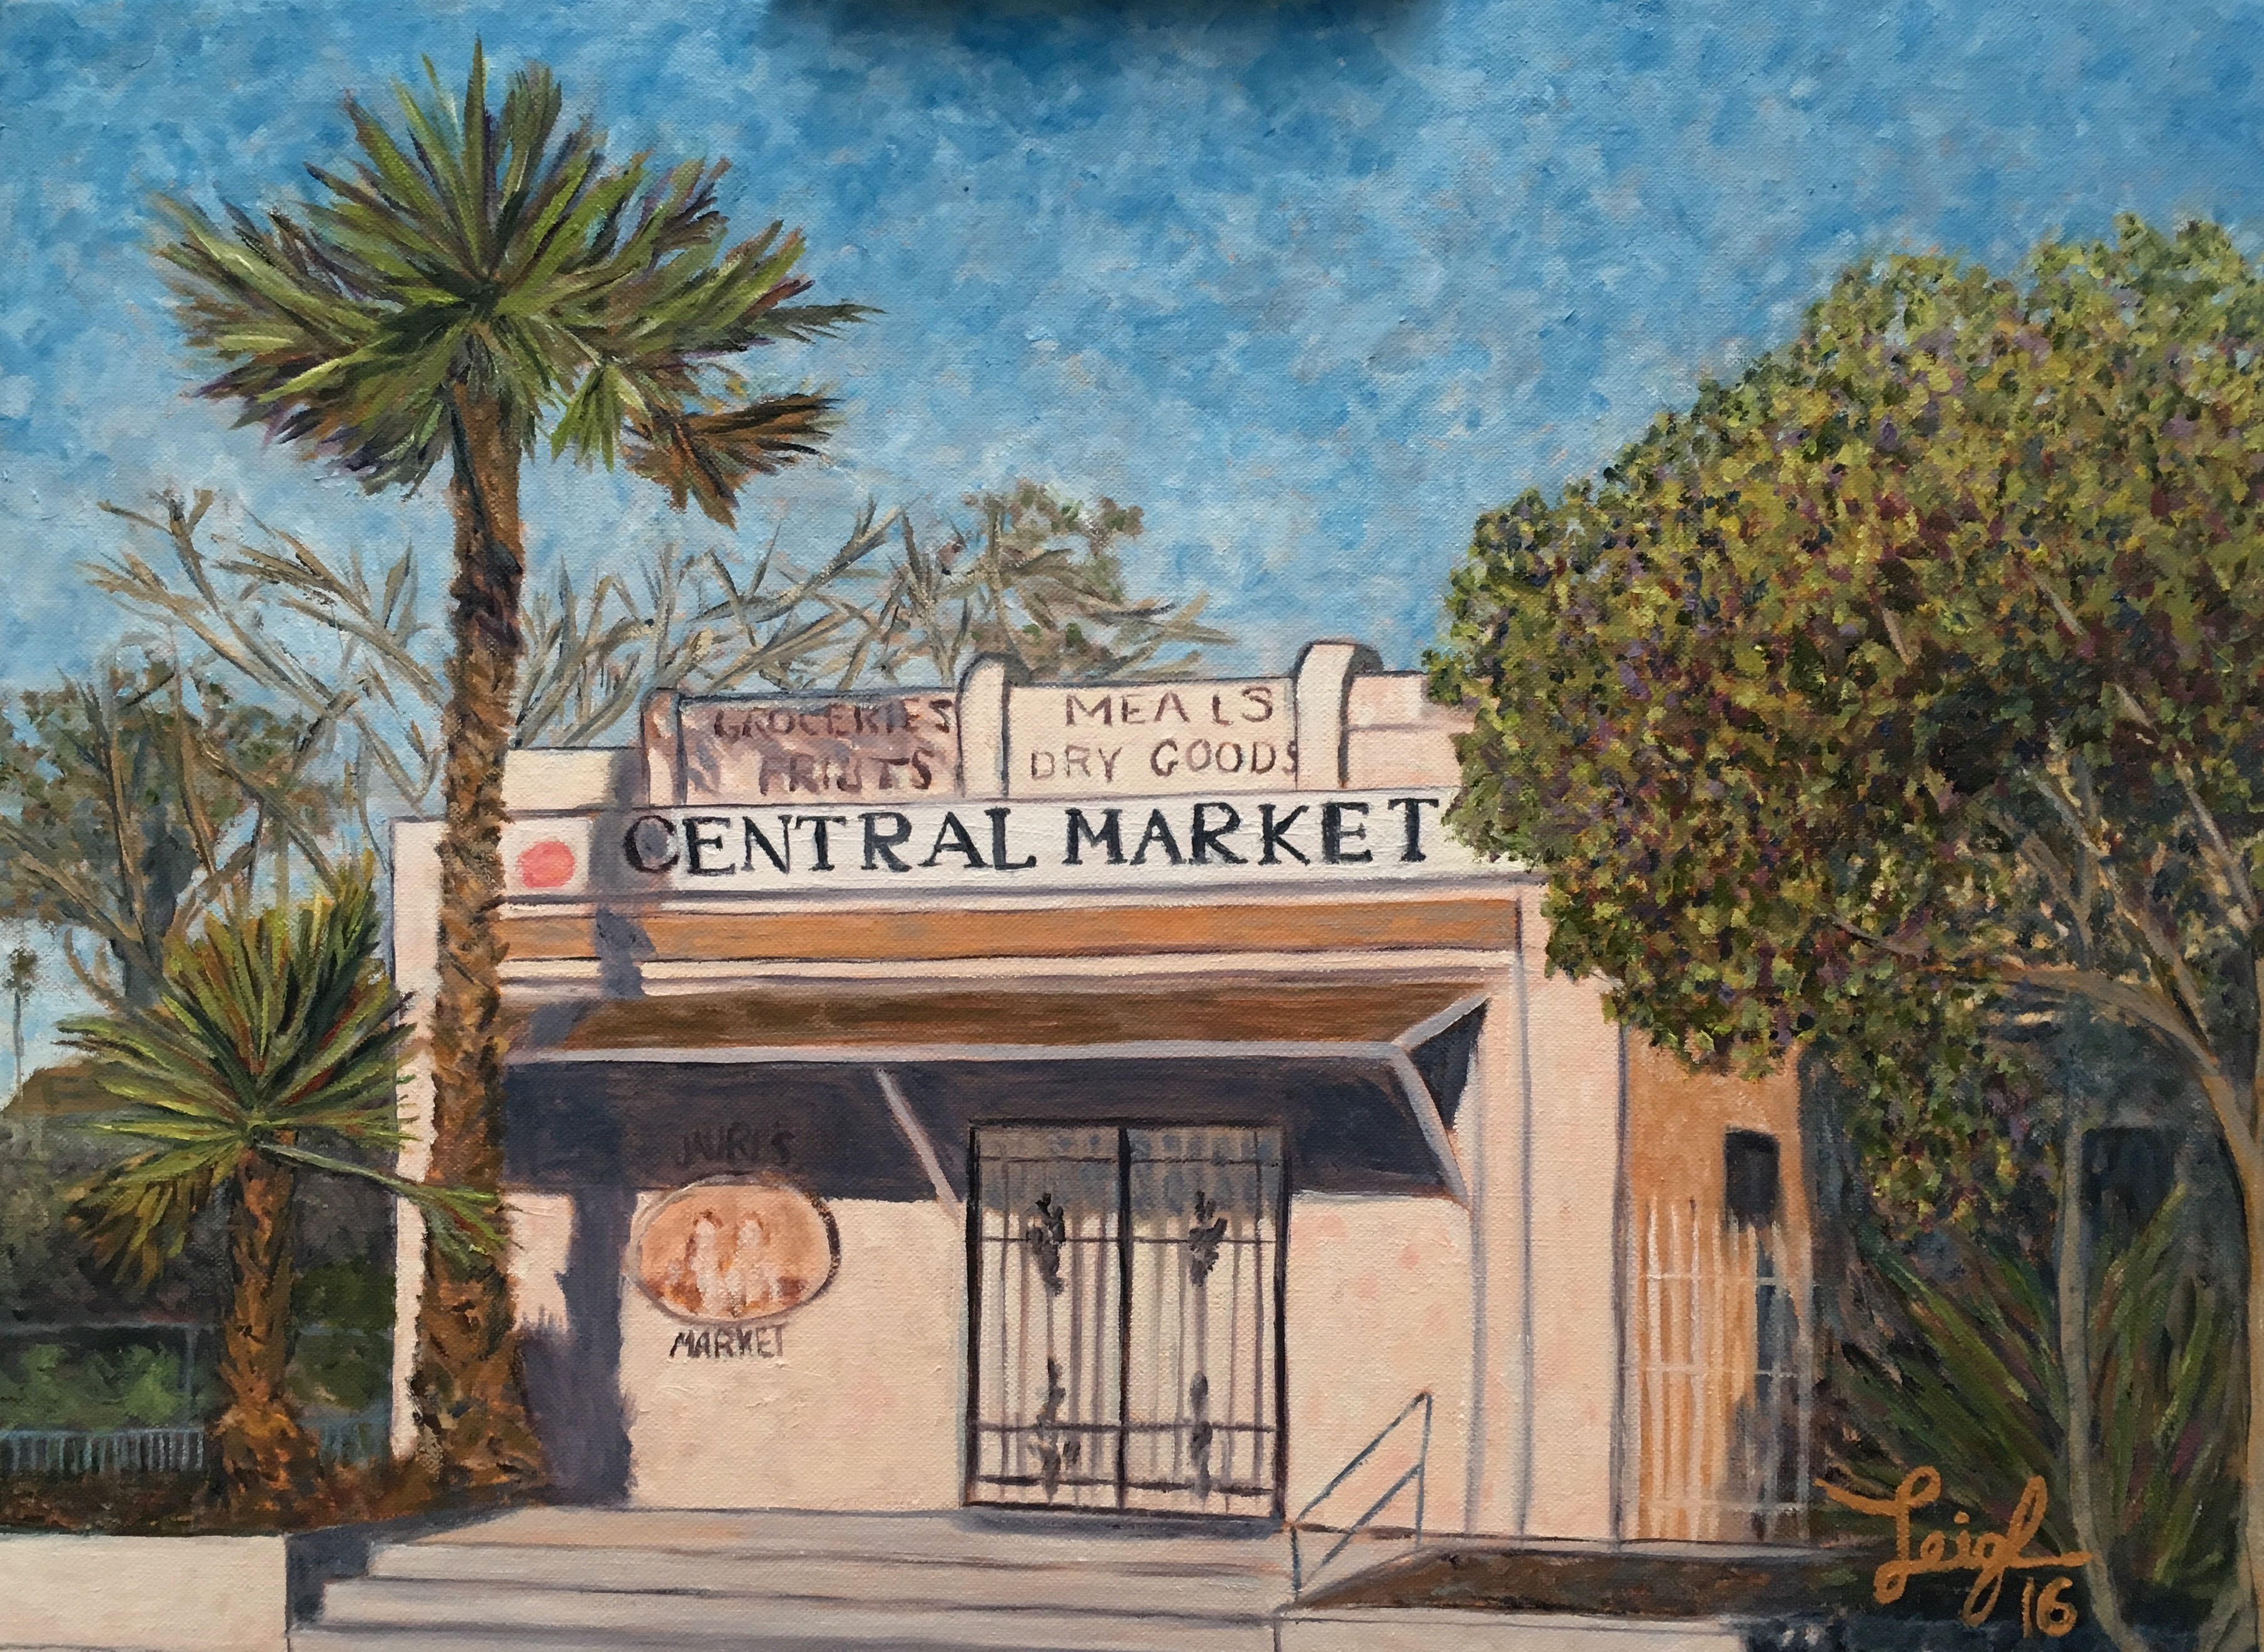 Central Market  ~   Leo Pacheco, Carlsbad, CA 2016  •  20  x 16